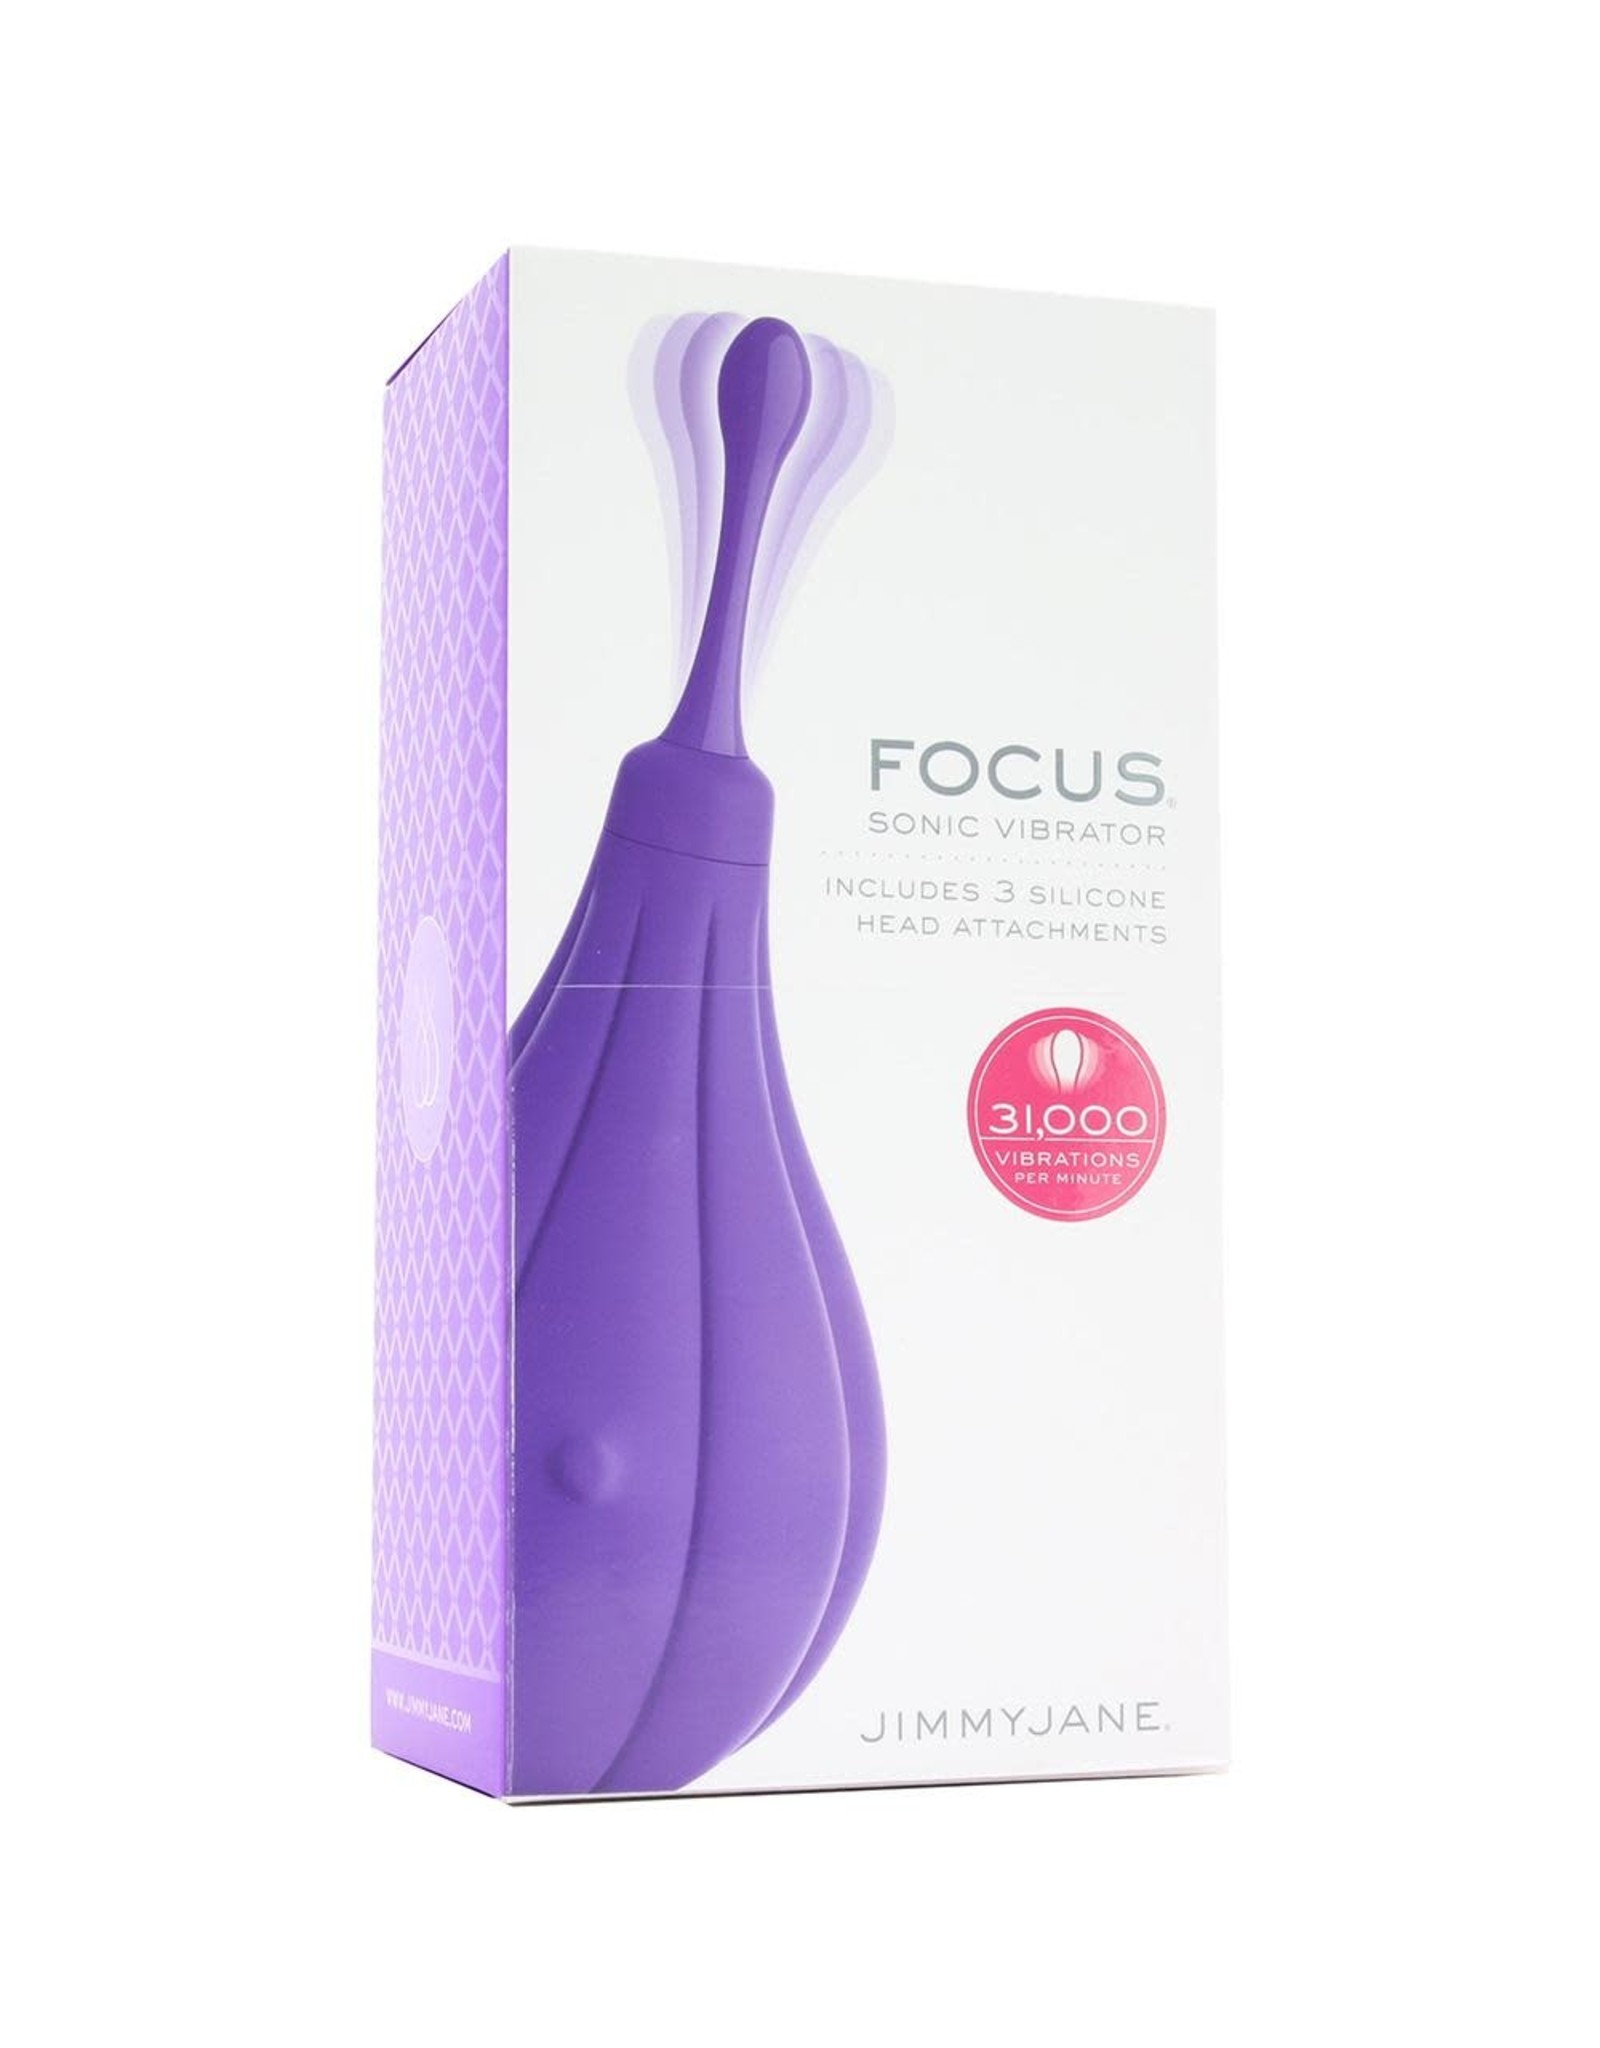 JIMMY JANE - FOCUS SONIC VIBRATOR - PURPLE